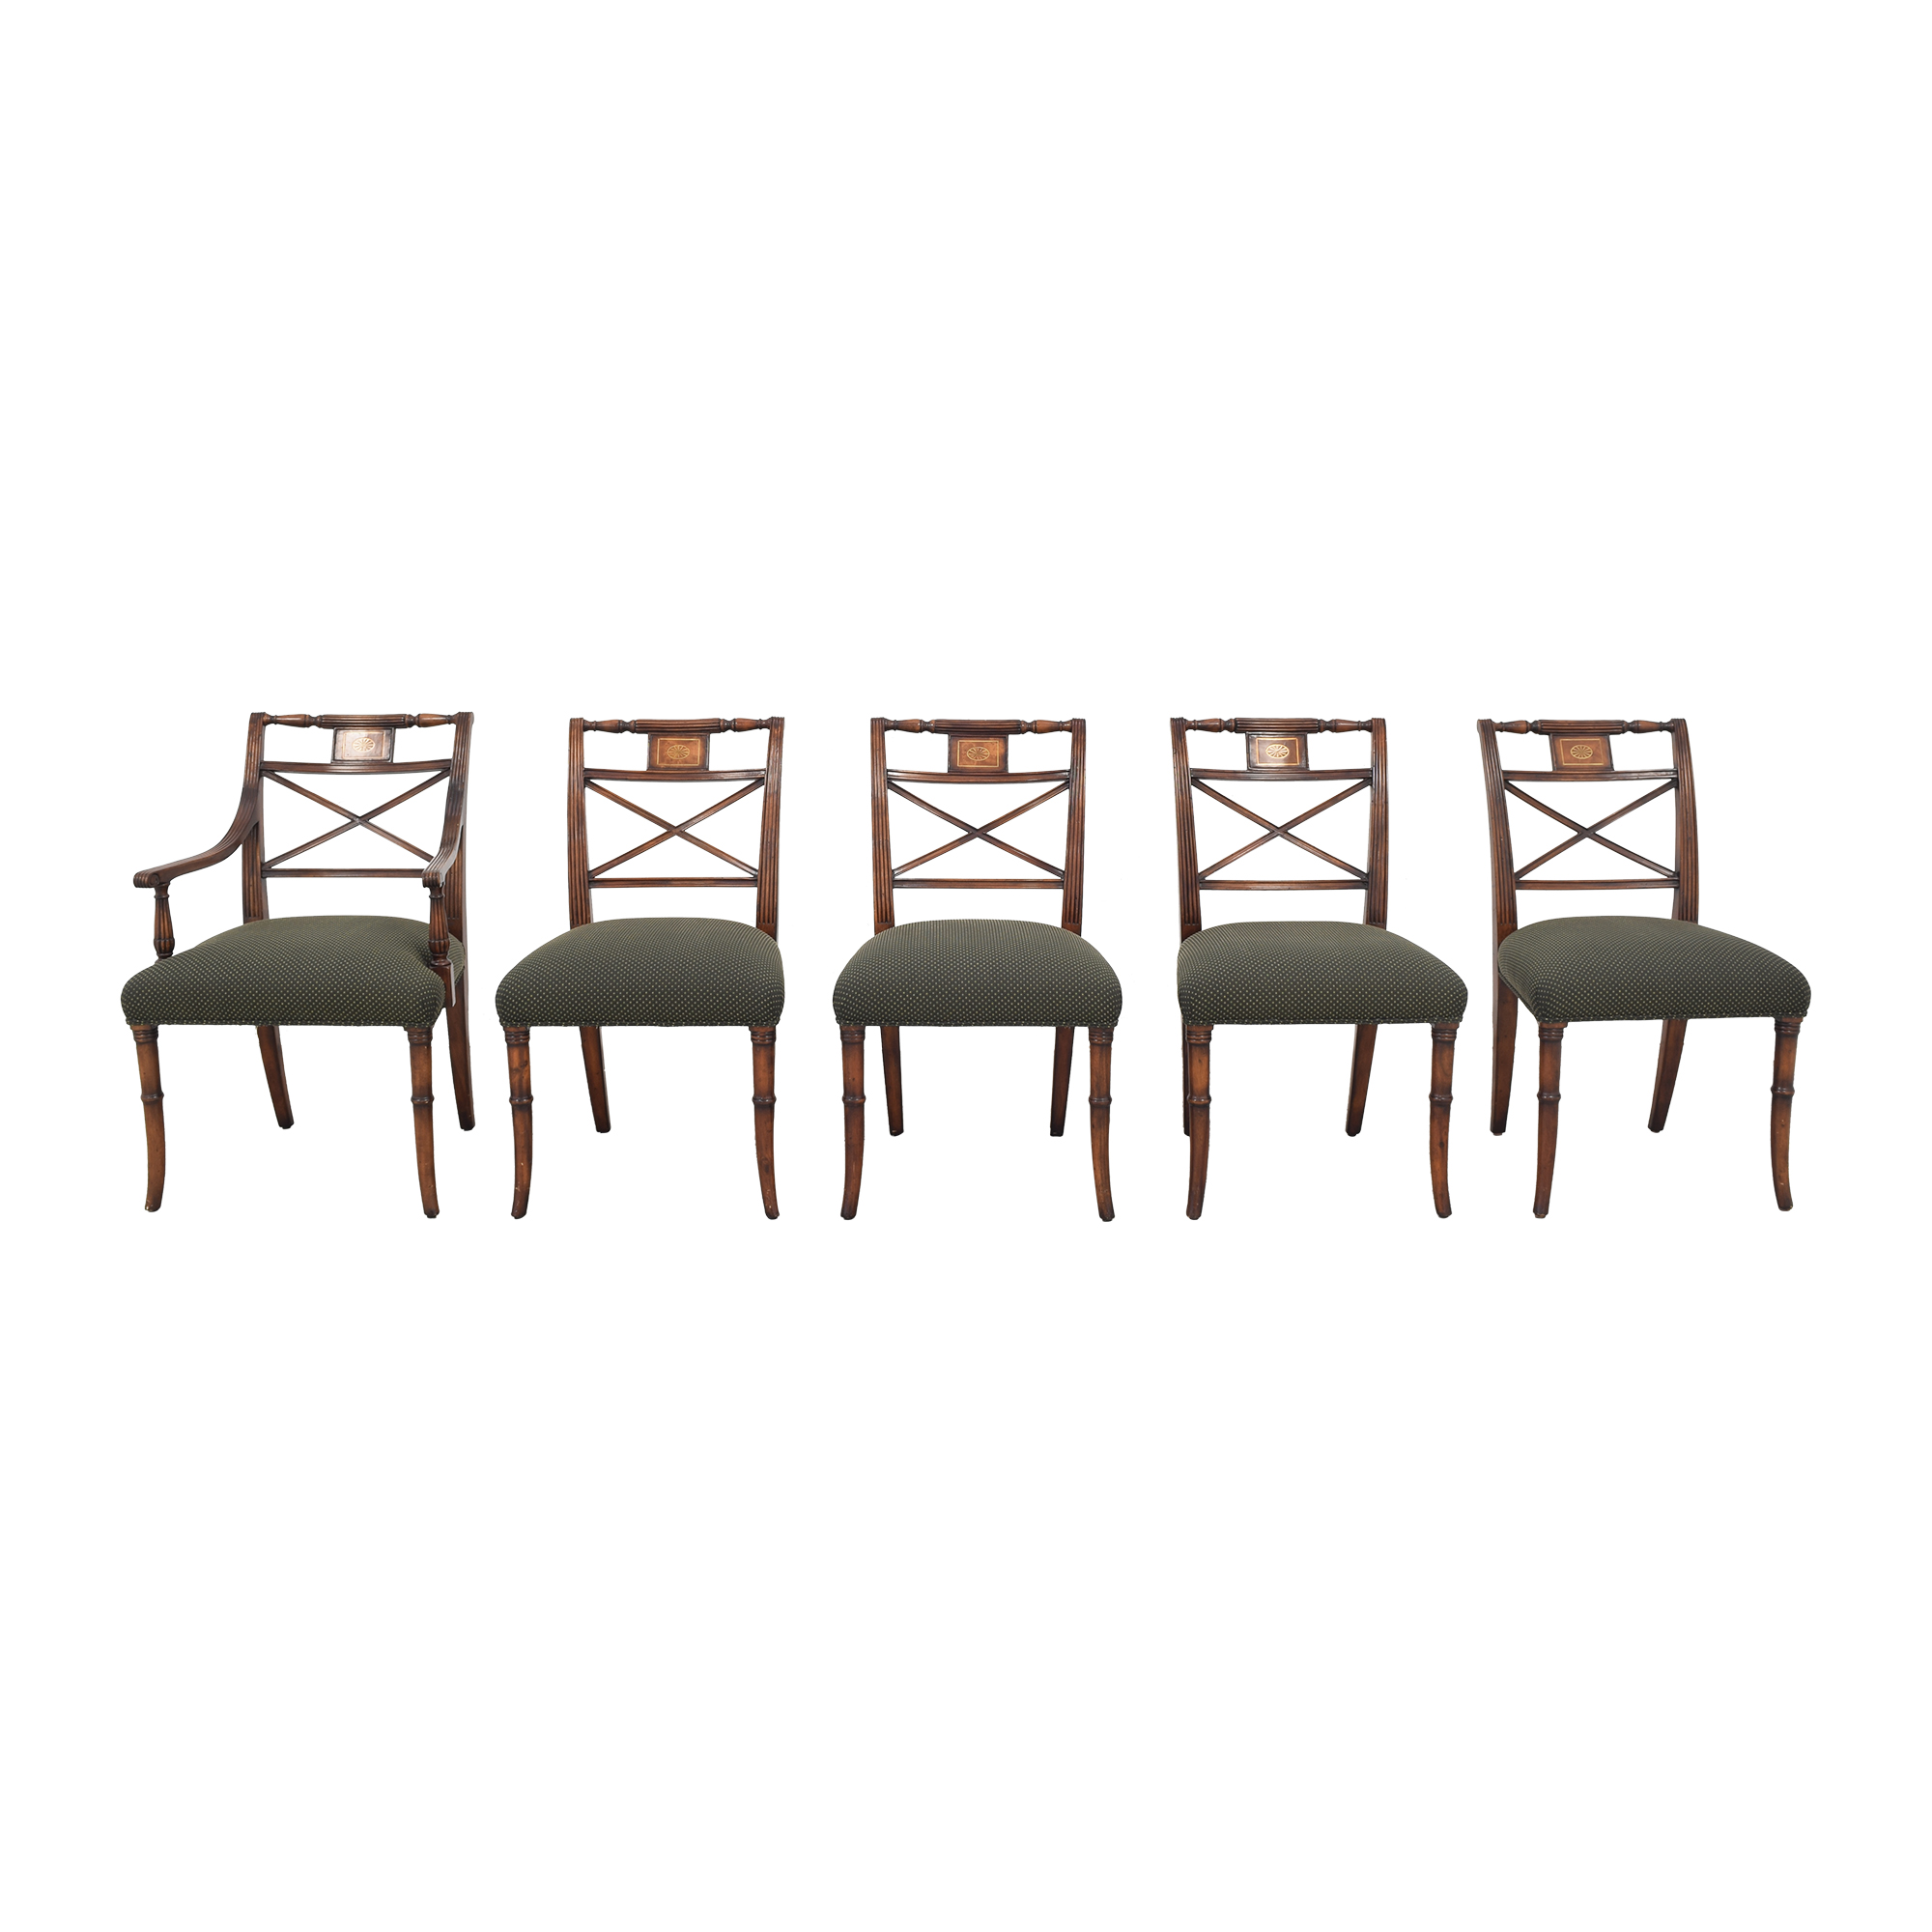 Baker Furniture Dining Chairs / Dining Chairs